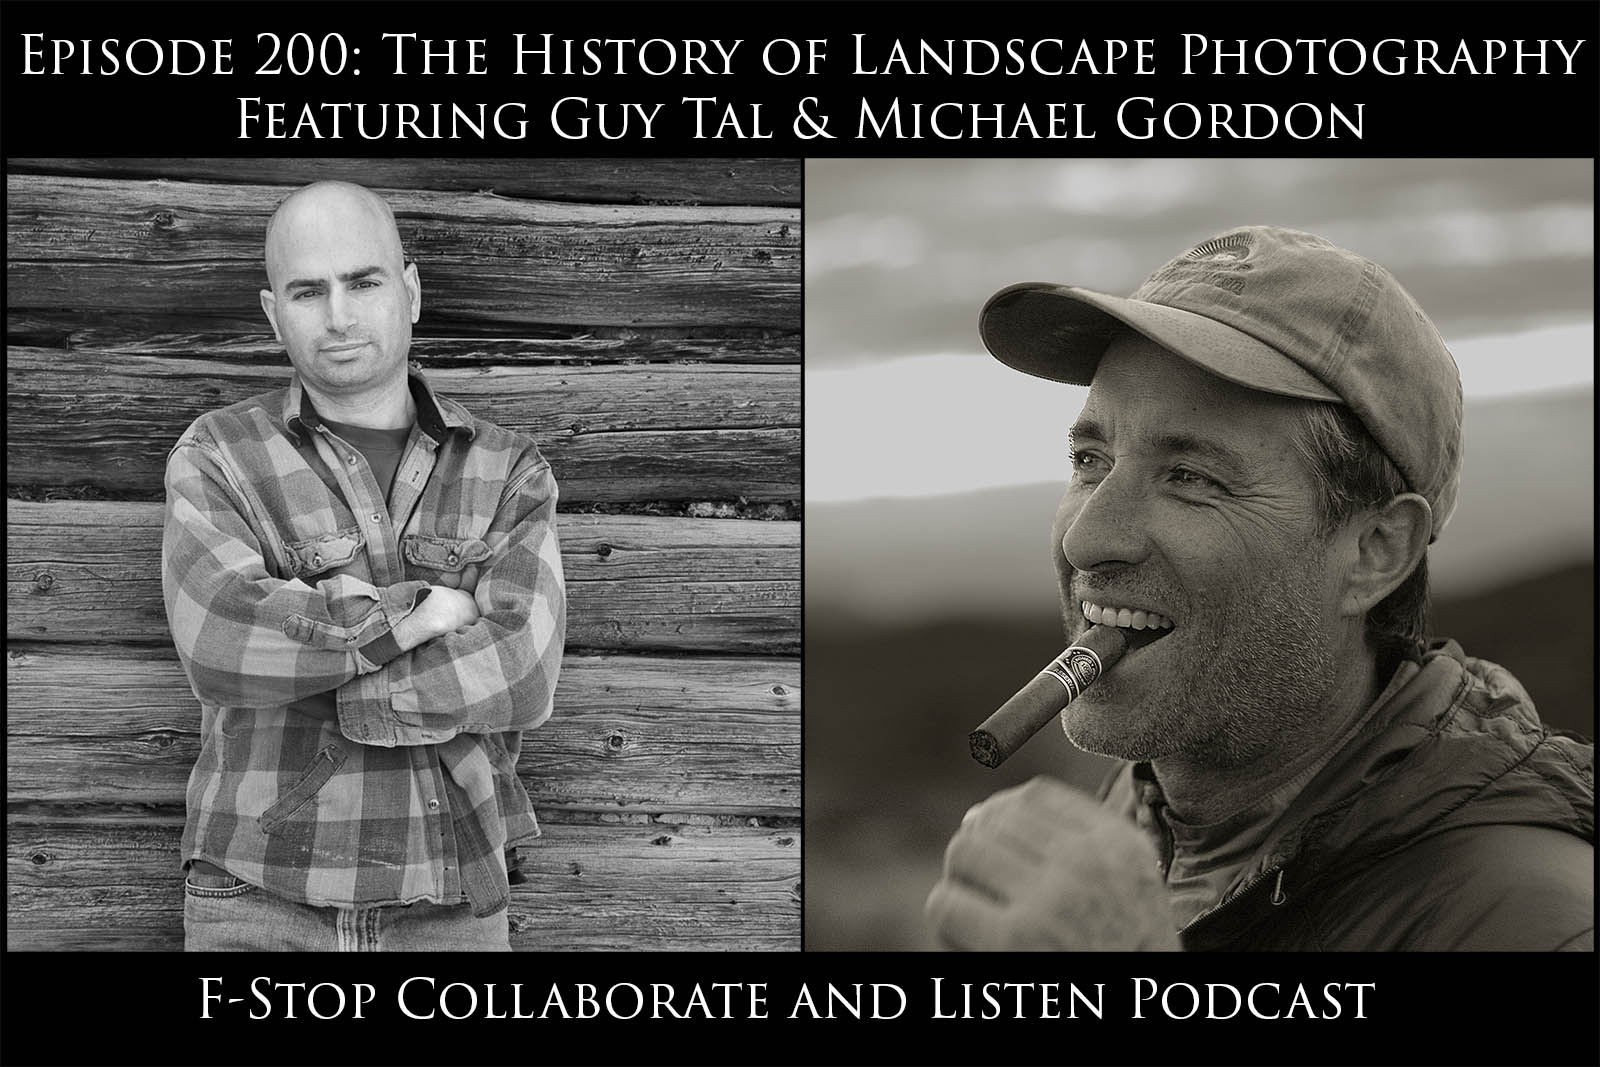 Guy Tal & Michael Gordon - The History of Landscape Photography